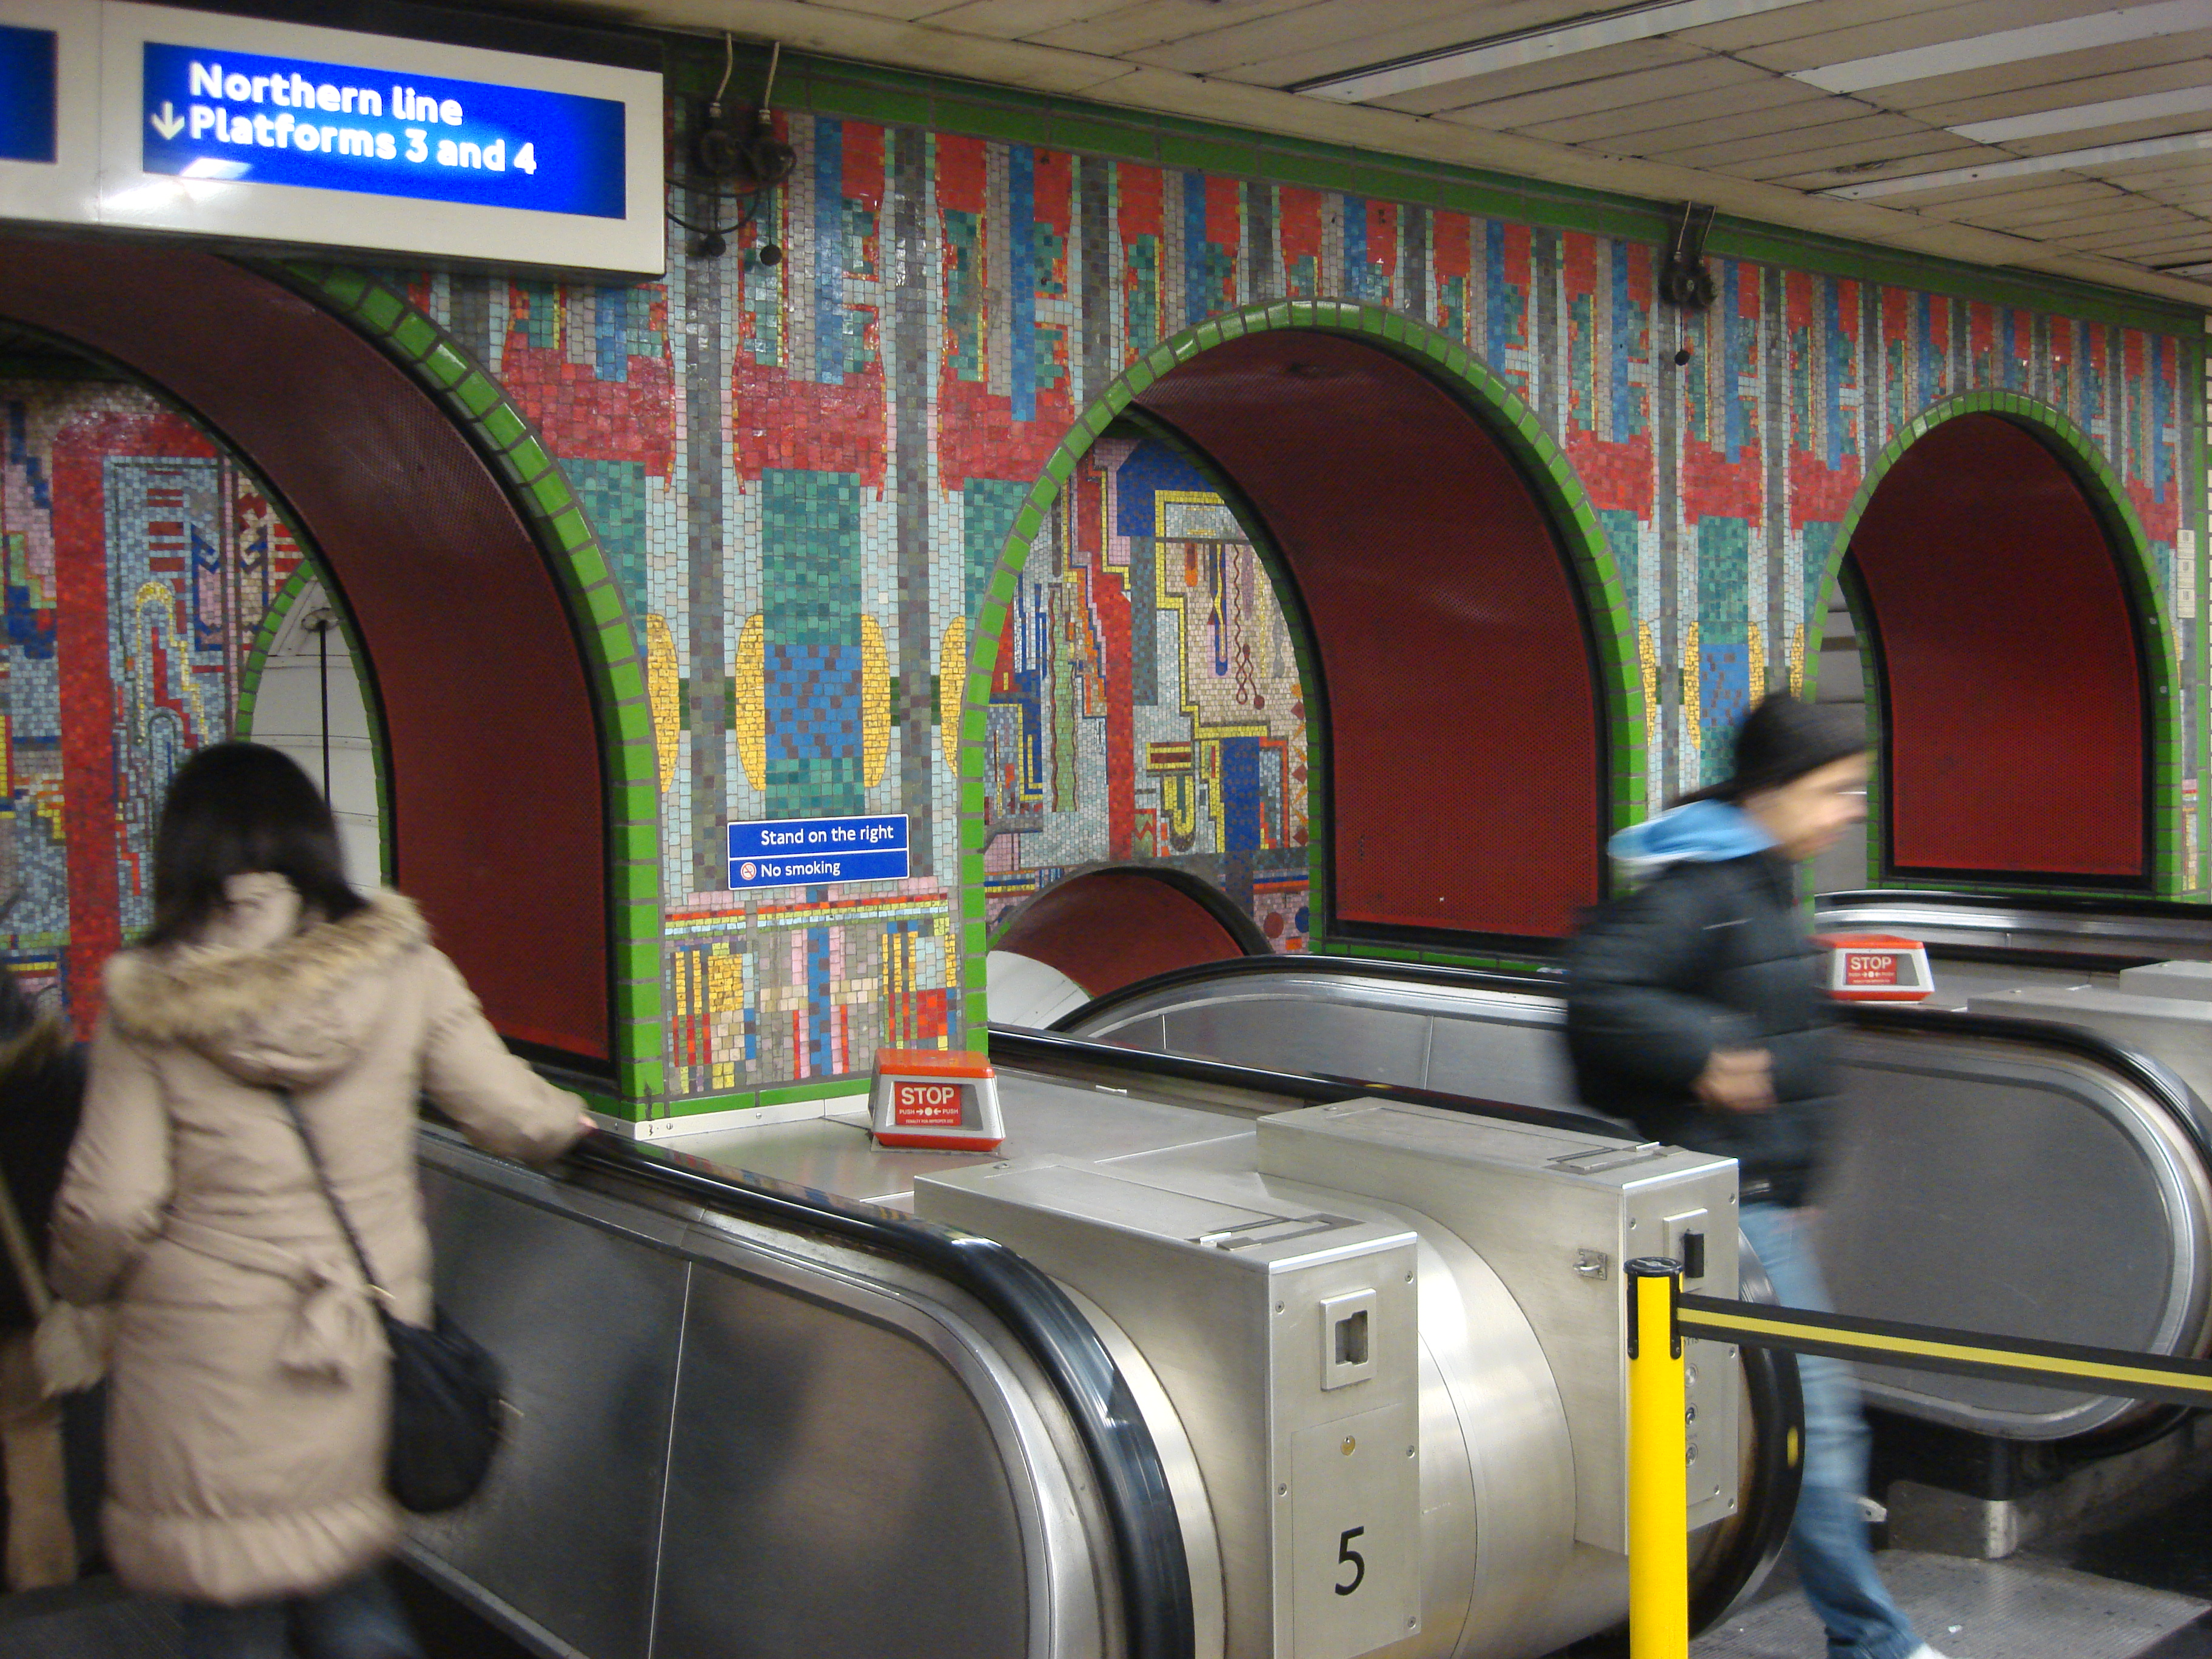 Tottenham Court Road tube Mosaic